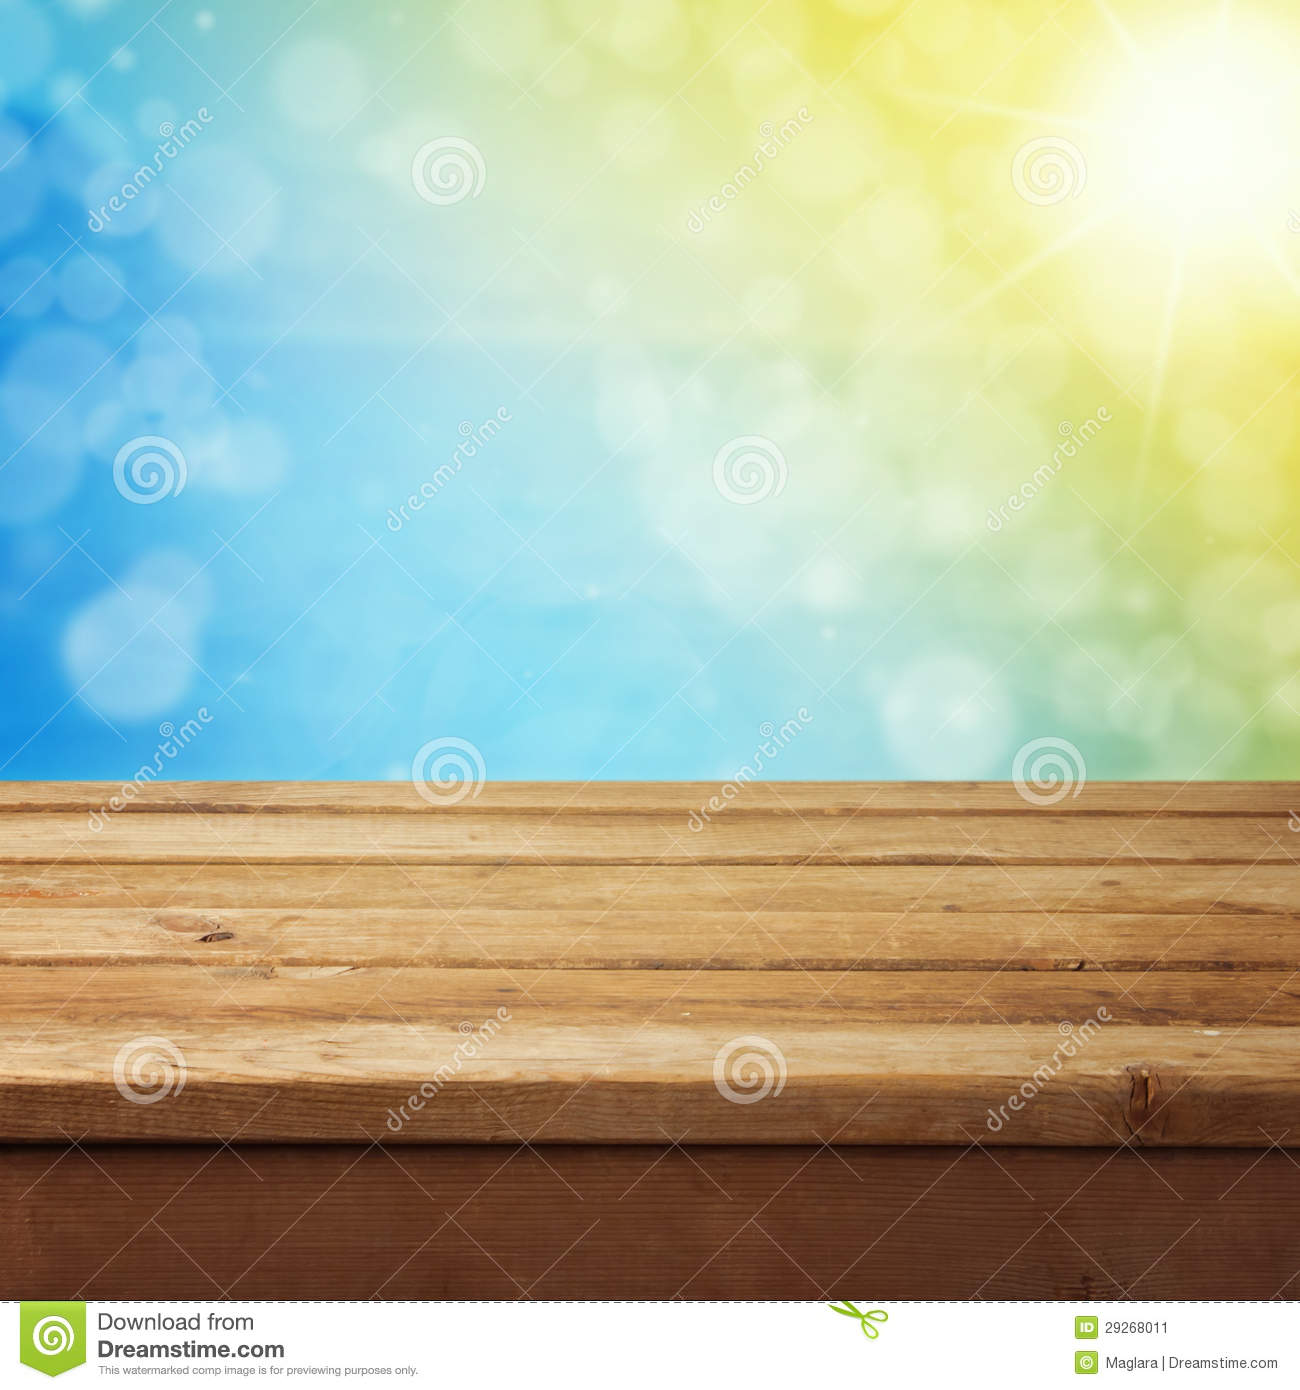 Background with wooden deck table stock image